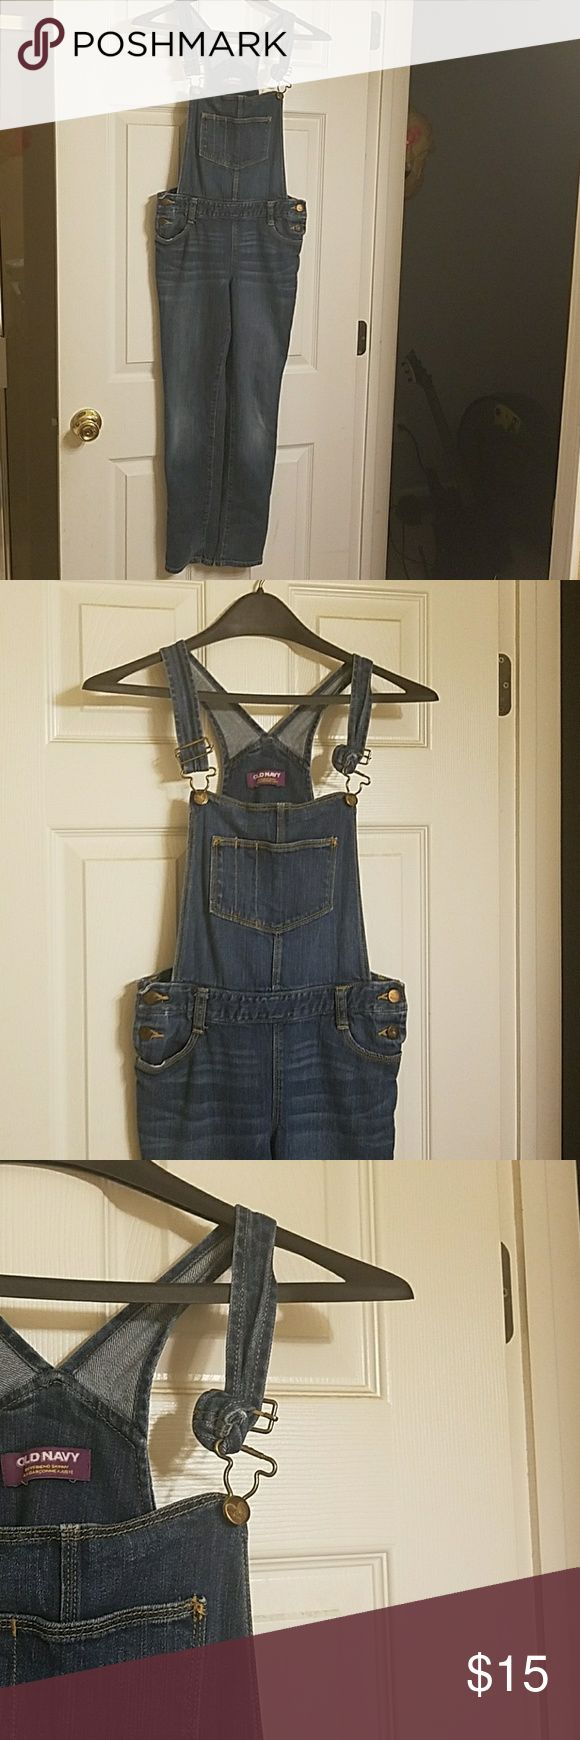 Old Navy overalls Blue jeans overalls Old Navy Other